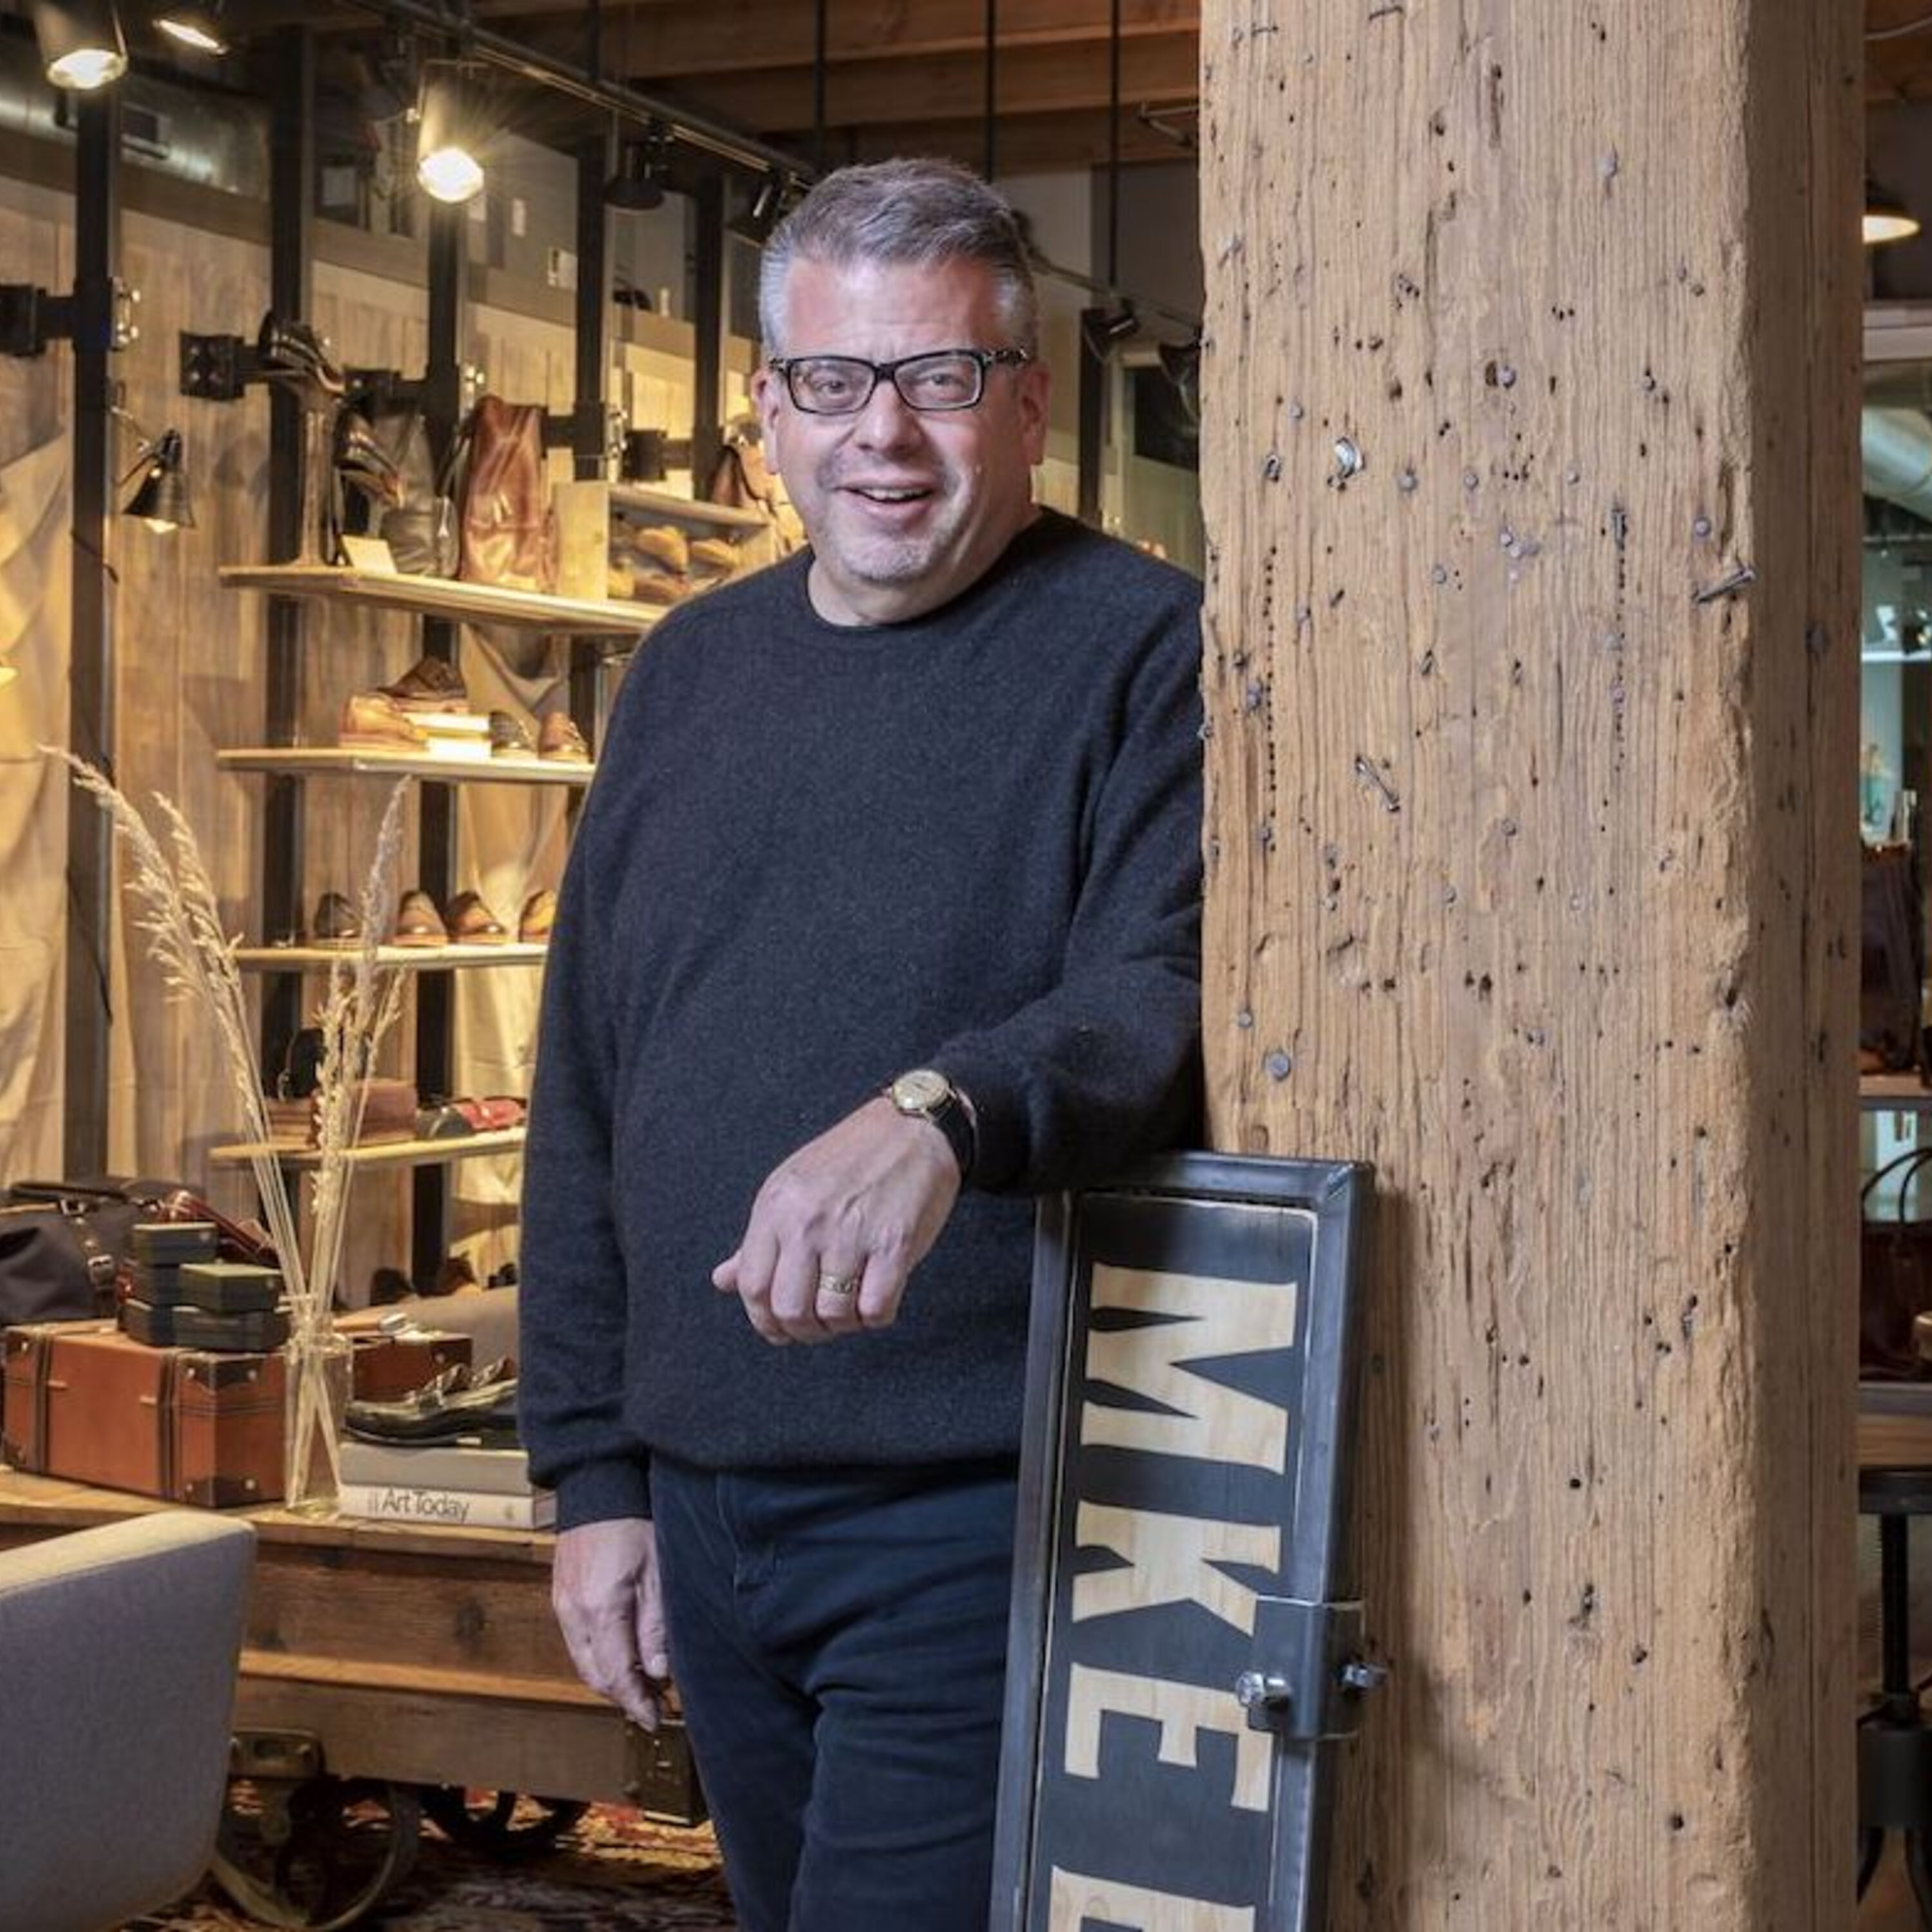 Mark Kohlenberg of WDM Footwear and Accessories - Vertically Integrated Supply Chain